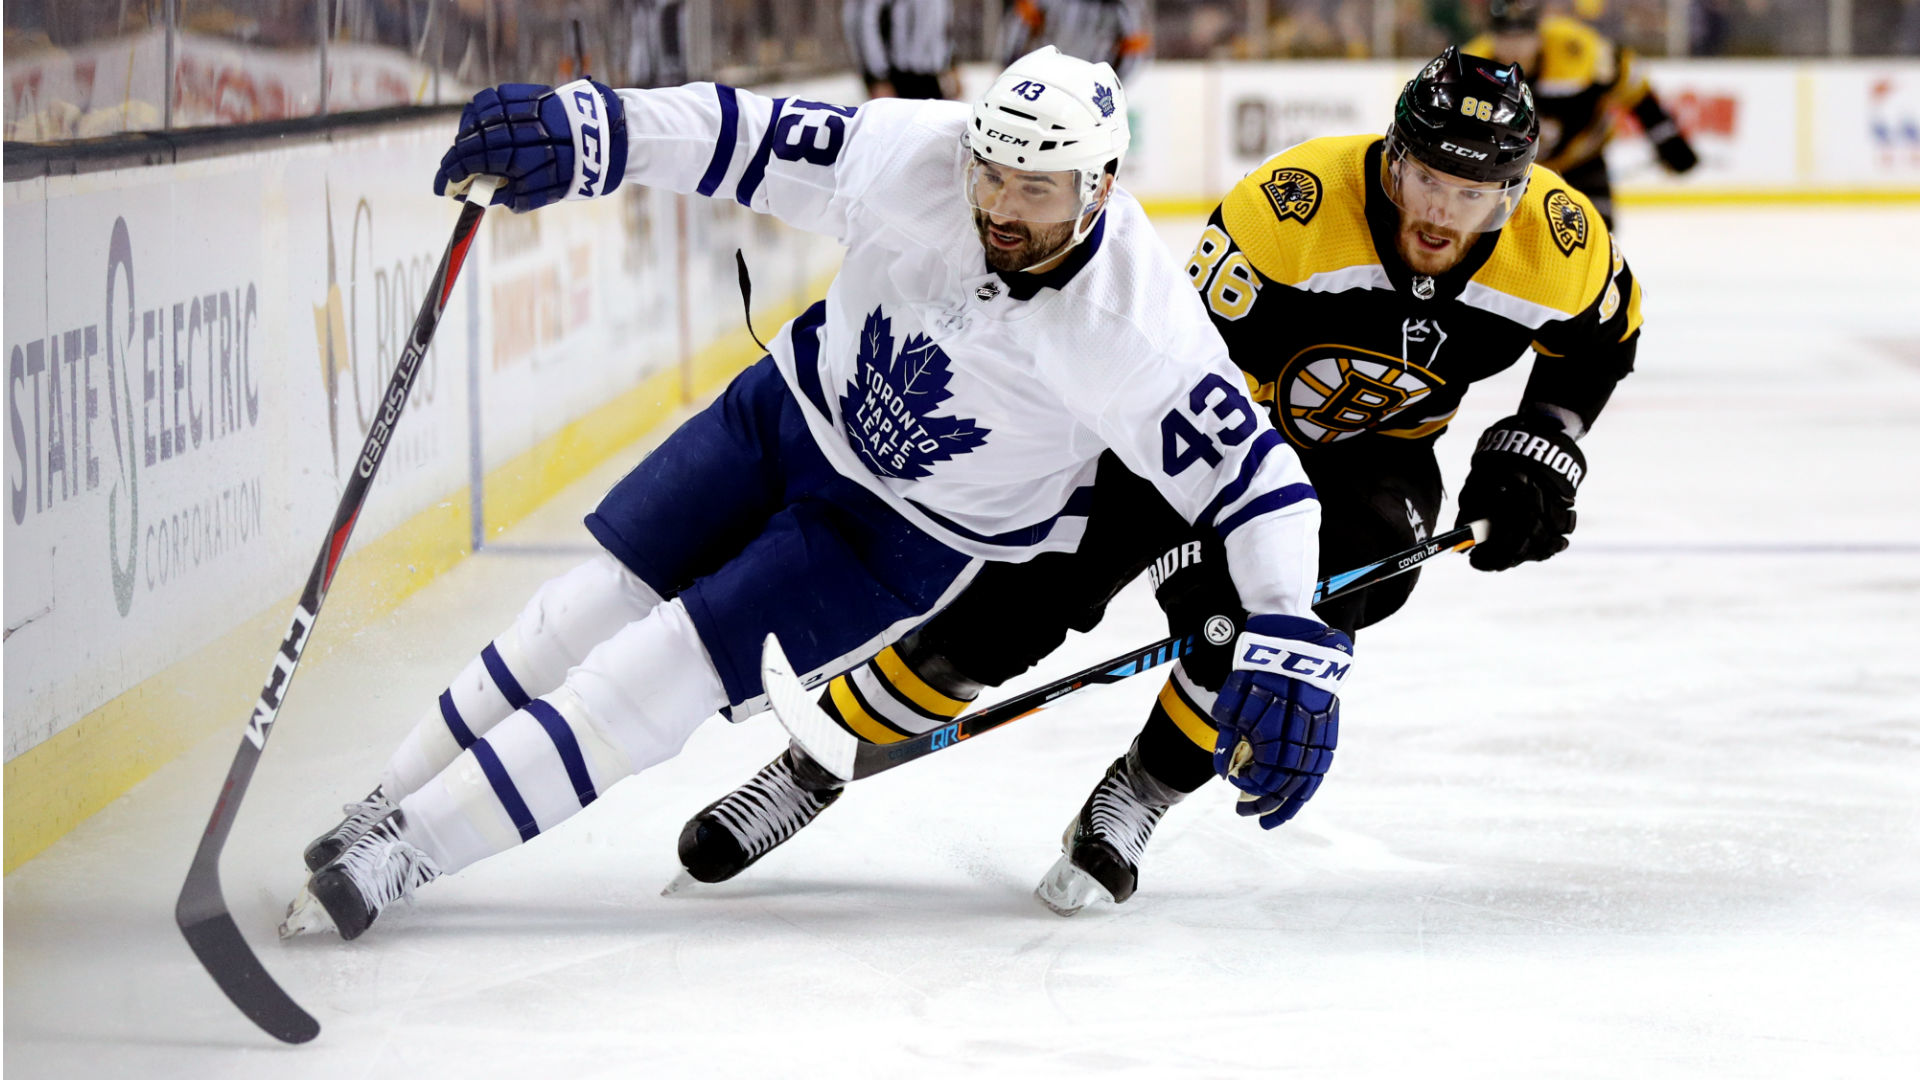 The Boston and Toronto series comes down Game 7